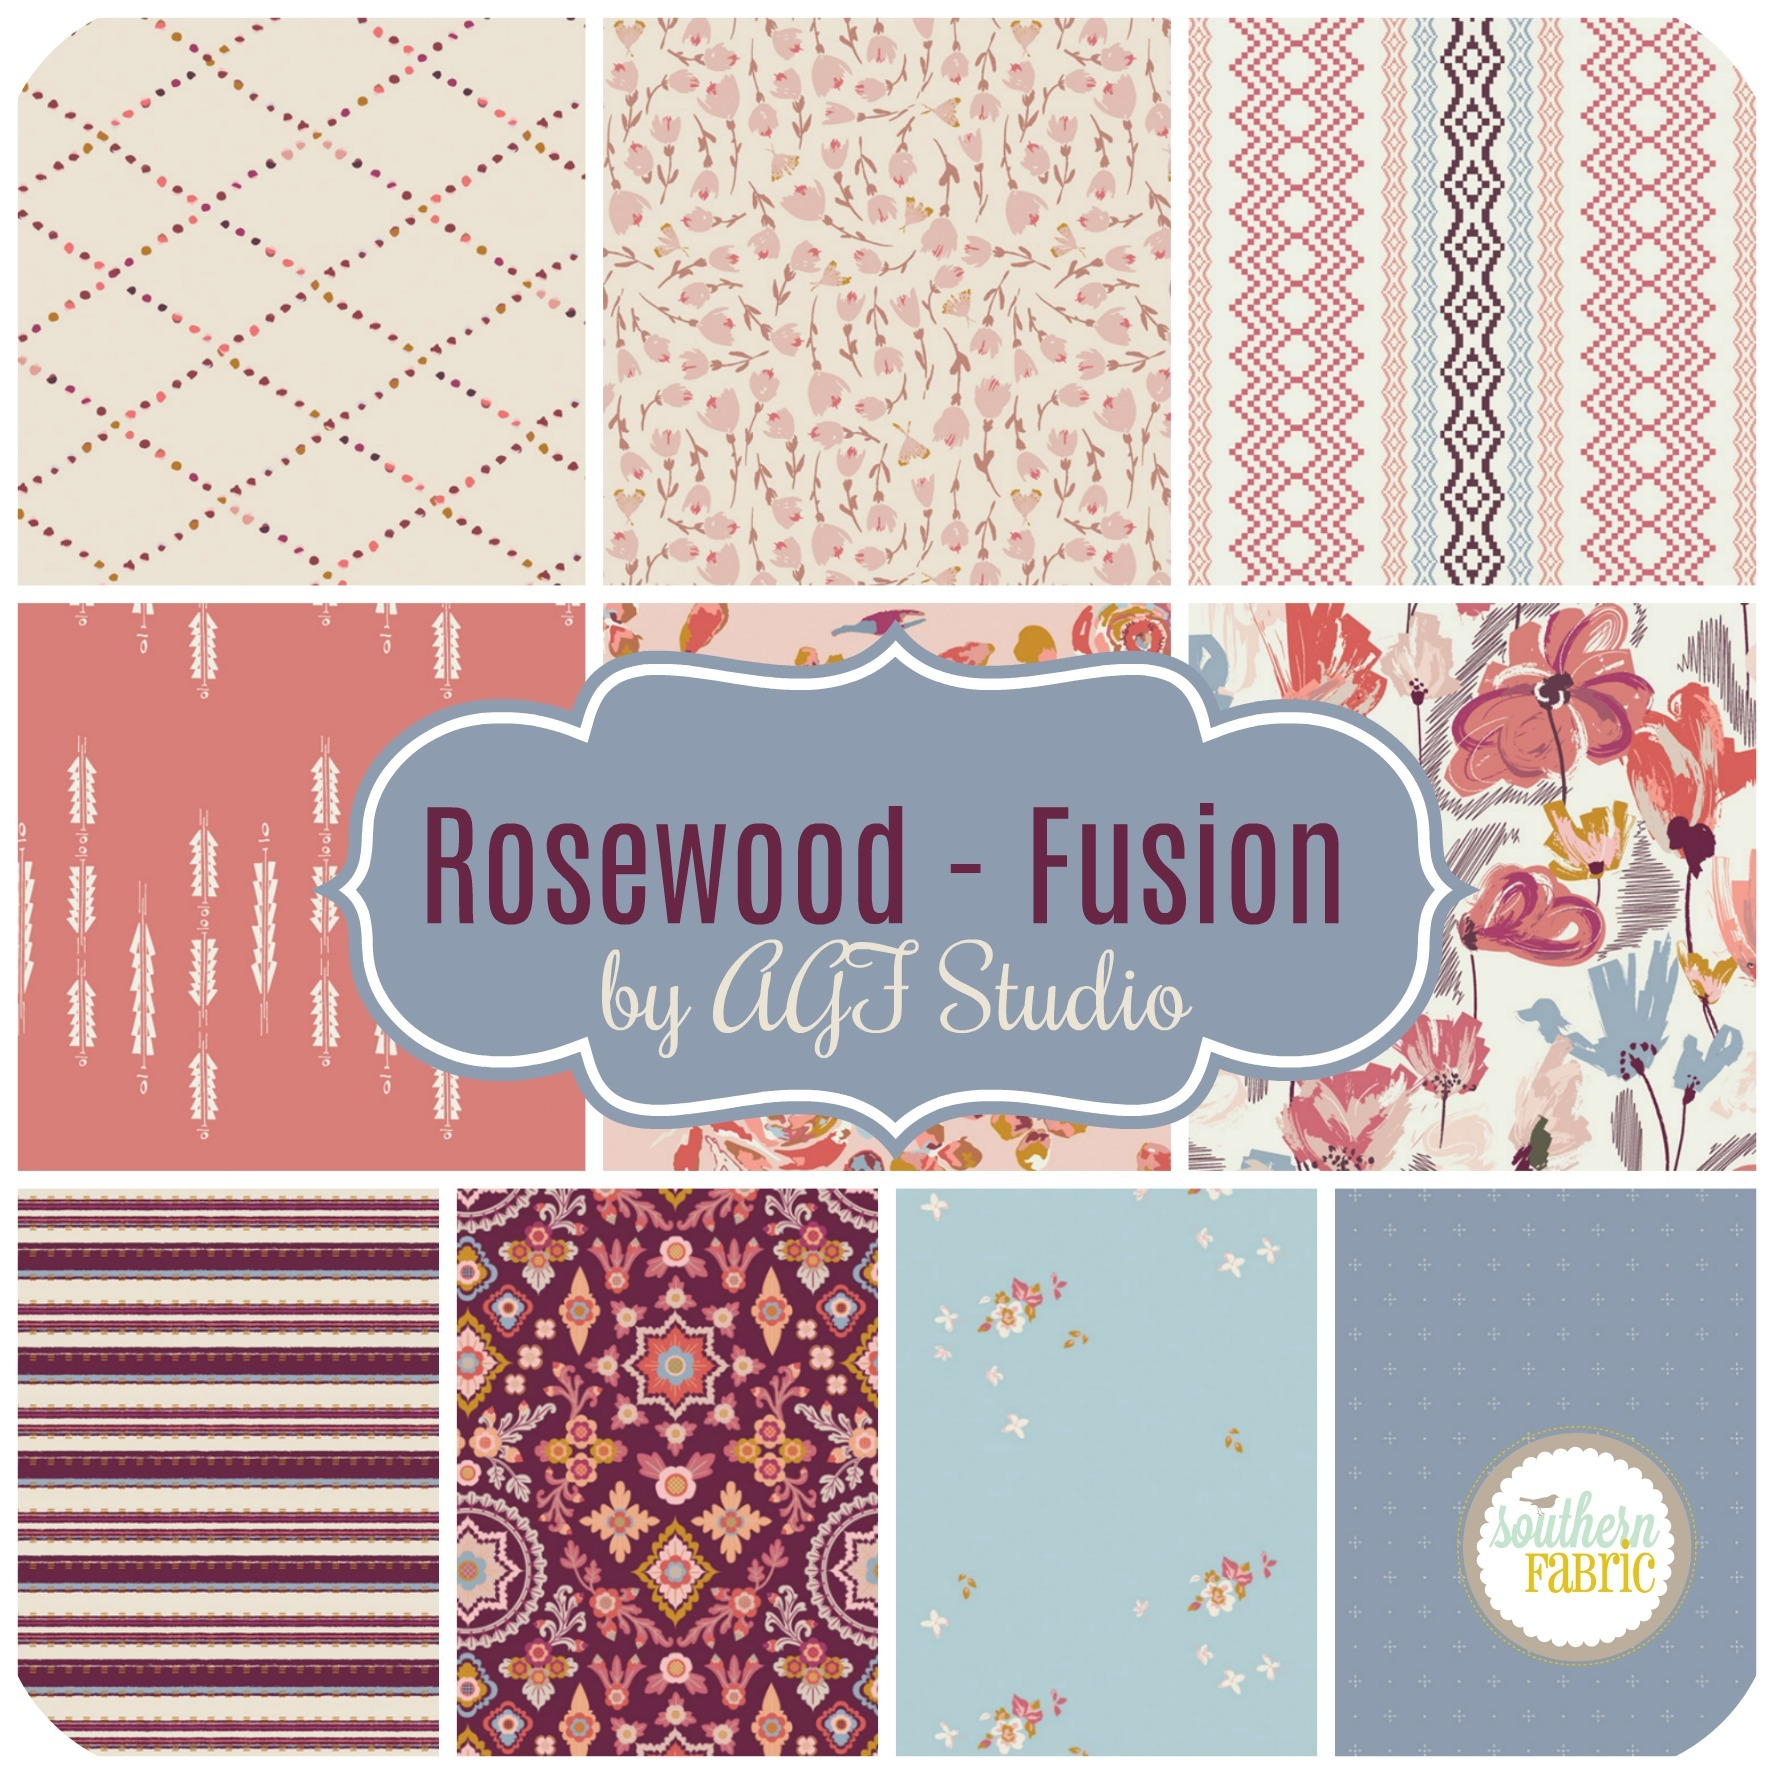 Rosewood - Fusion by AGF Studio